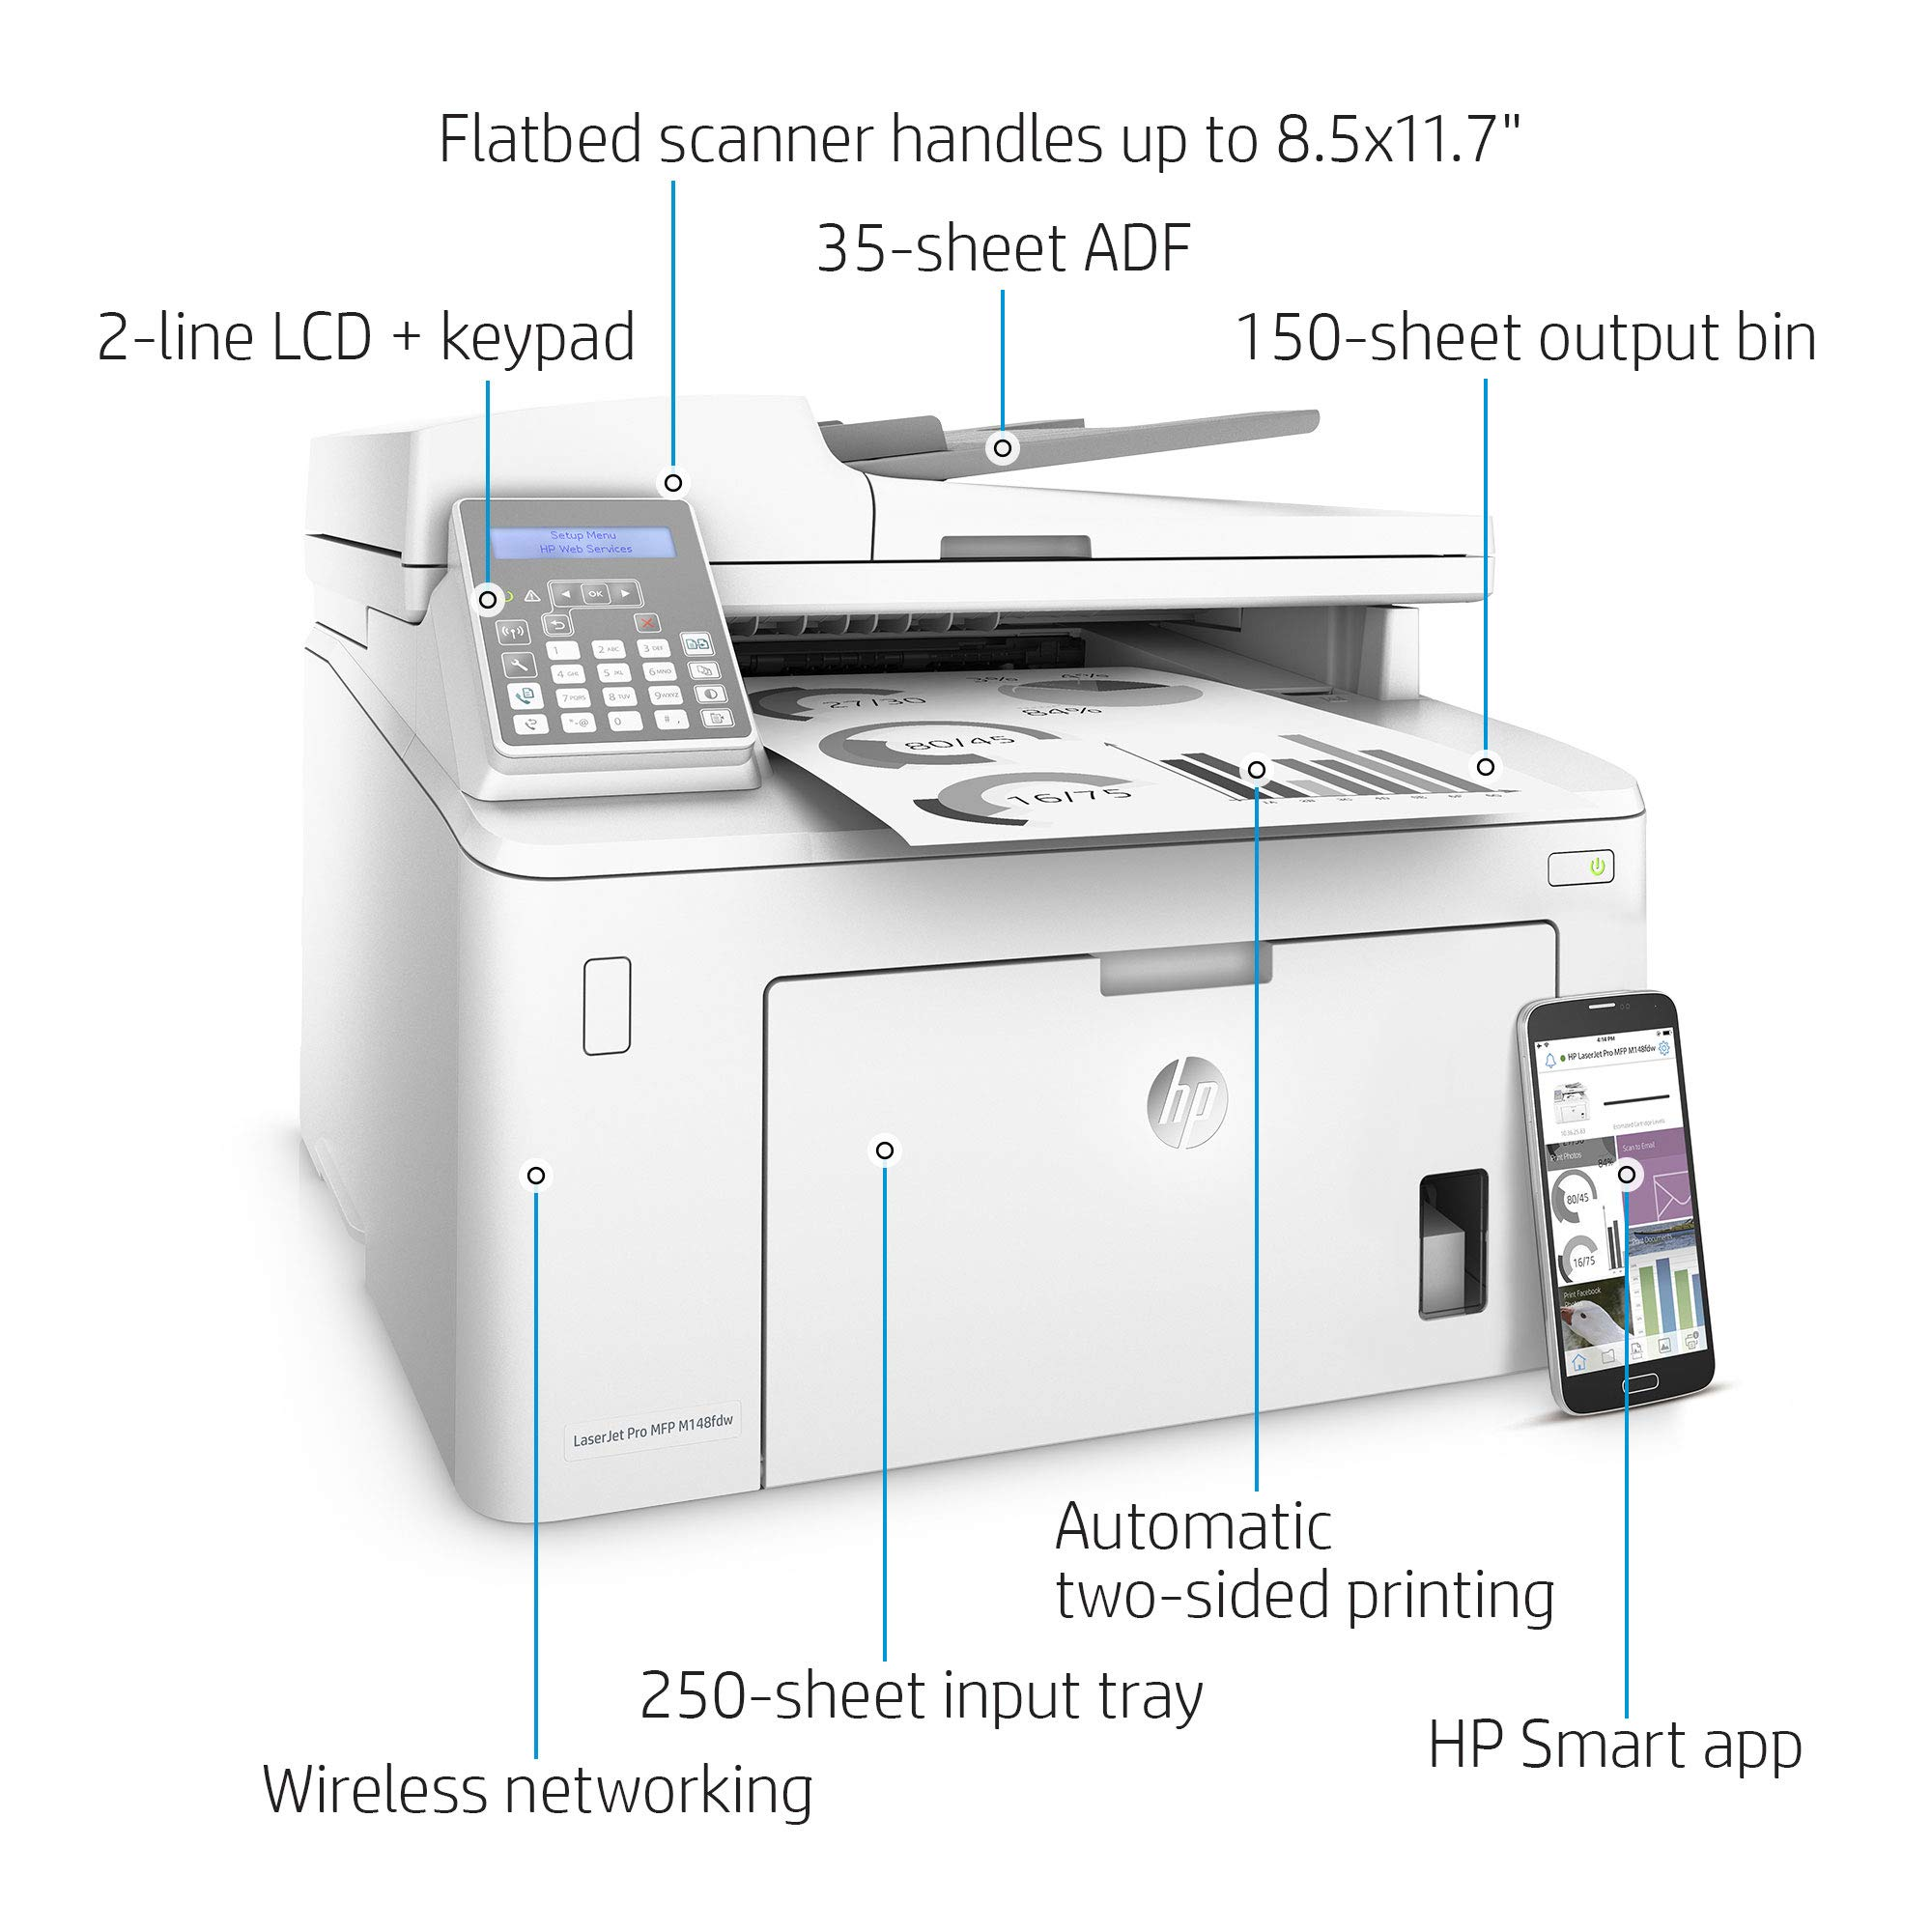 HP Laserjet Pro M148fdw All-in-One Wireless Monochrome Laser Printer with Auto Two-Sided Printing, Mobile Printing, Fax & Built-in Ethernet (4PA42A) by HP (Image #2)